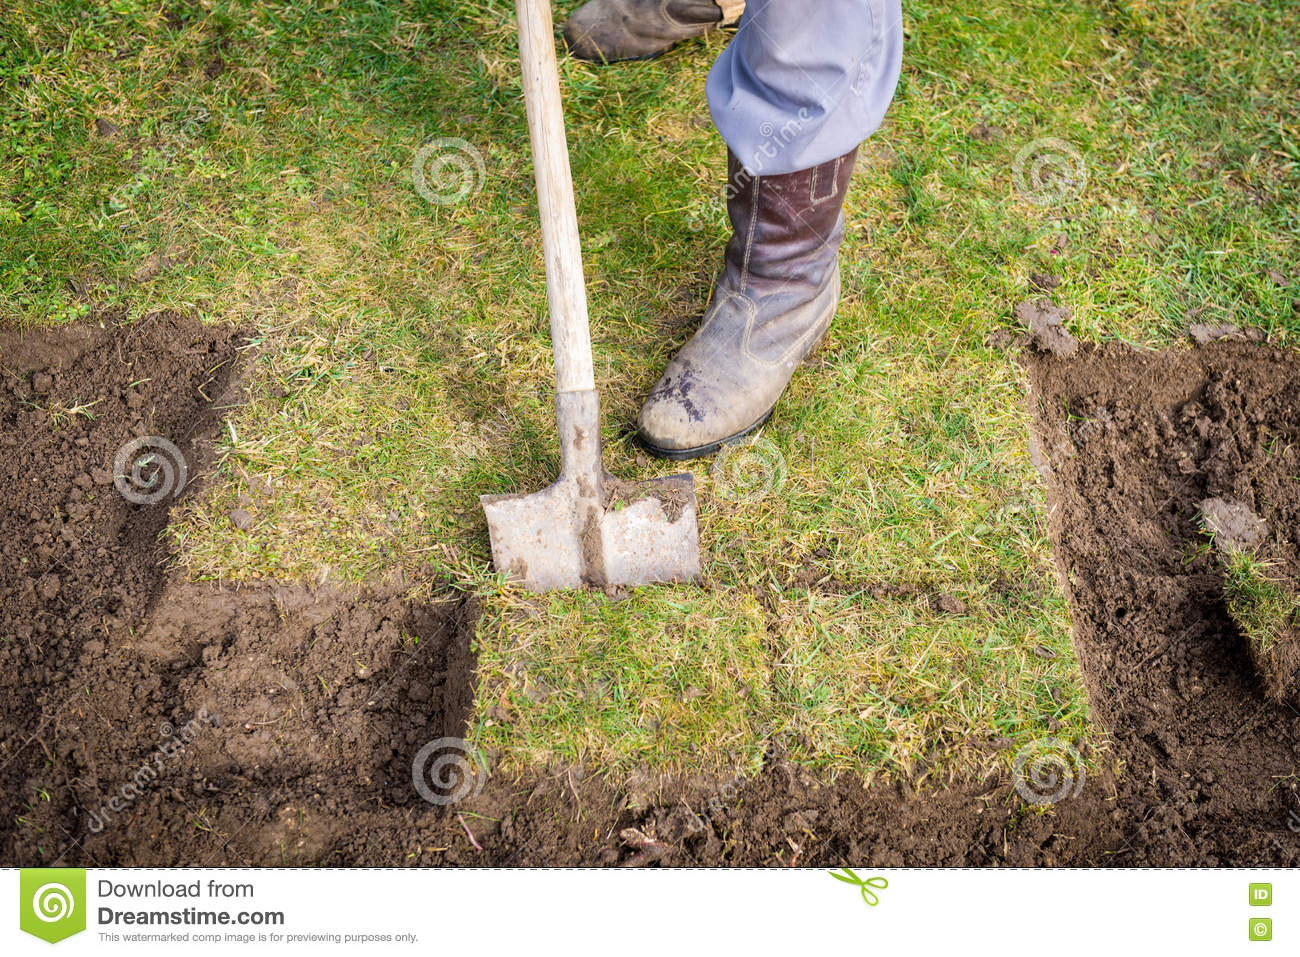 Man digging with spade in garden royalty free stock image for Digging ground dream meaning